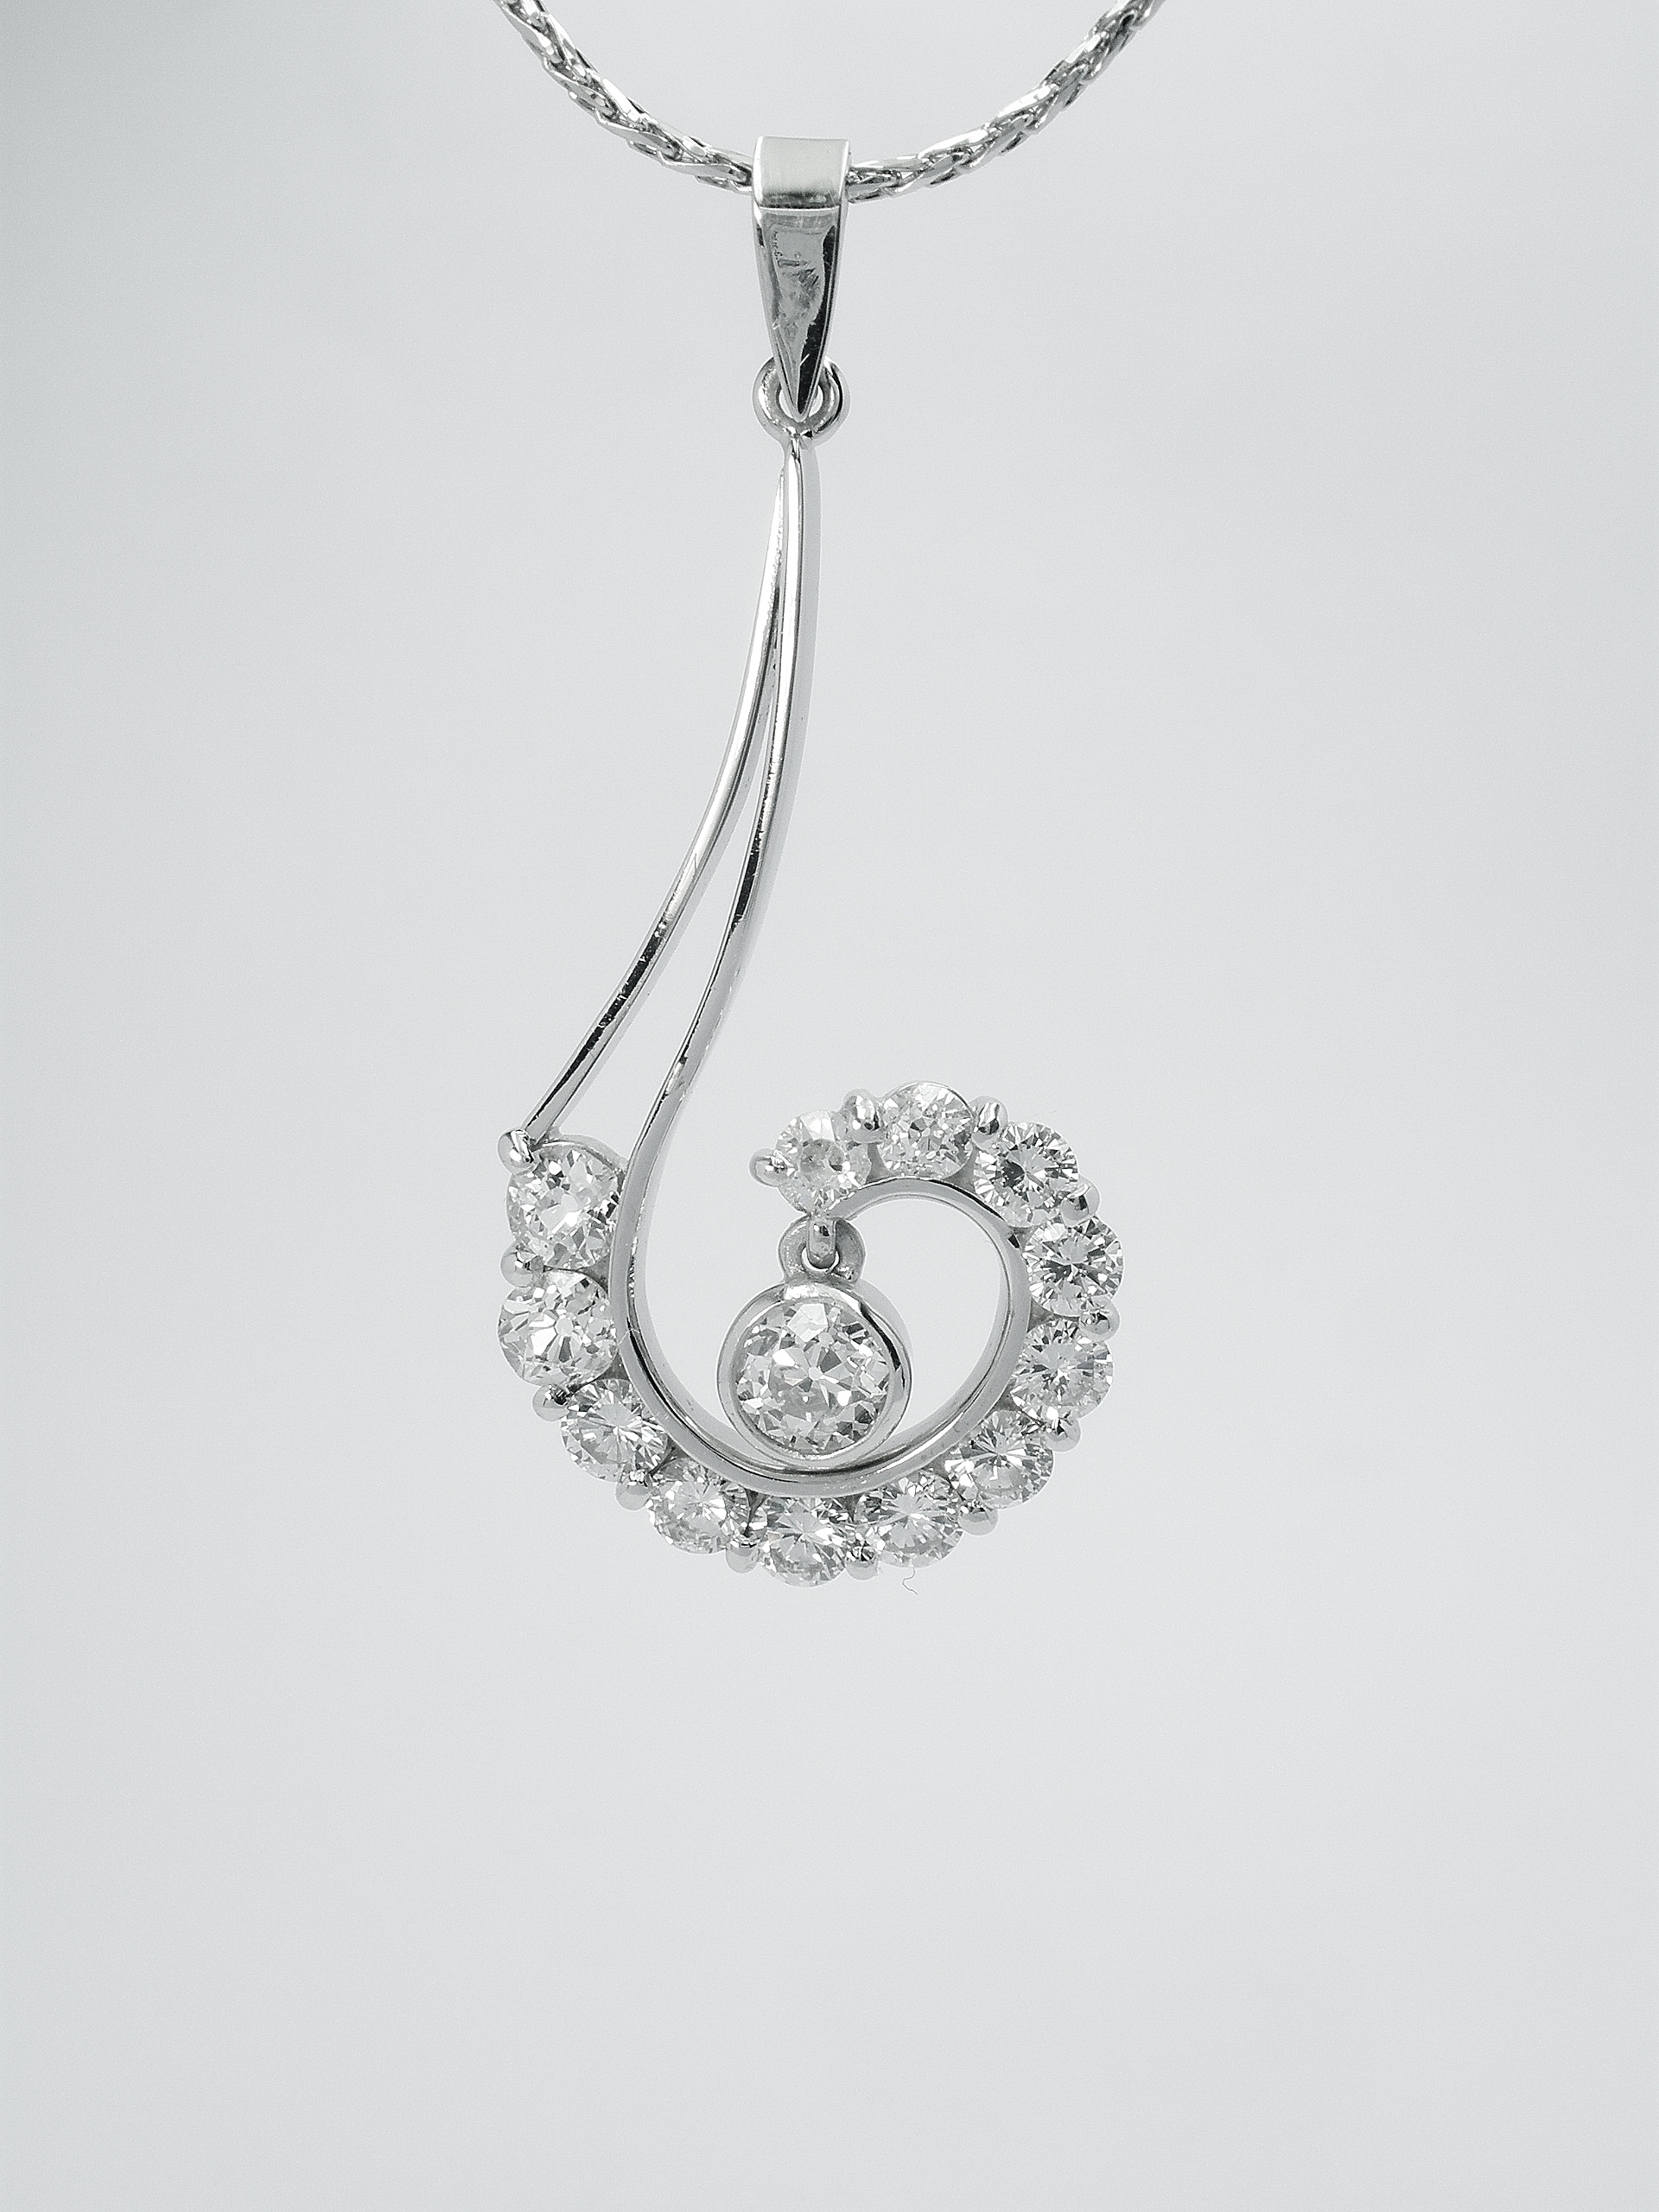 A part channel set platinum & palladium 13 stone diamond pendant in the style of an inverted question mark, with single rub-over set.